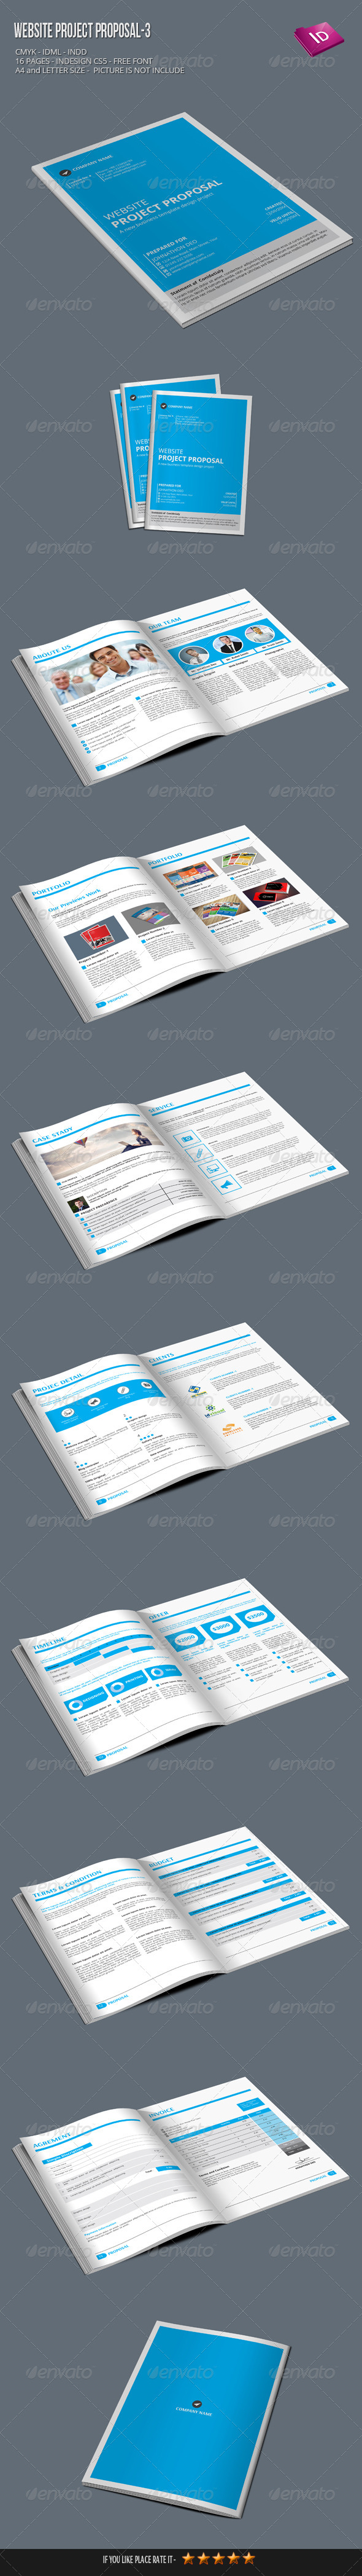 GraphicRiver Website Project Proposal-3 7952394